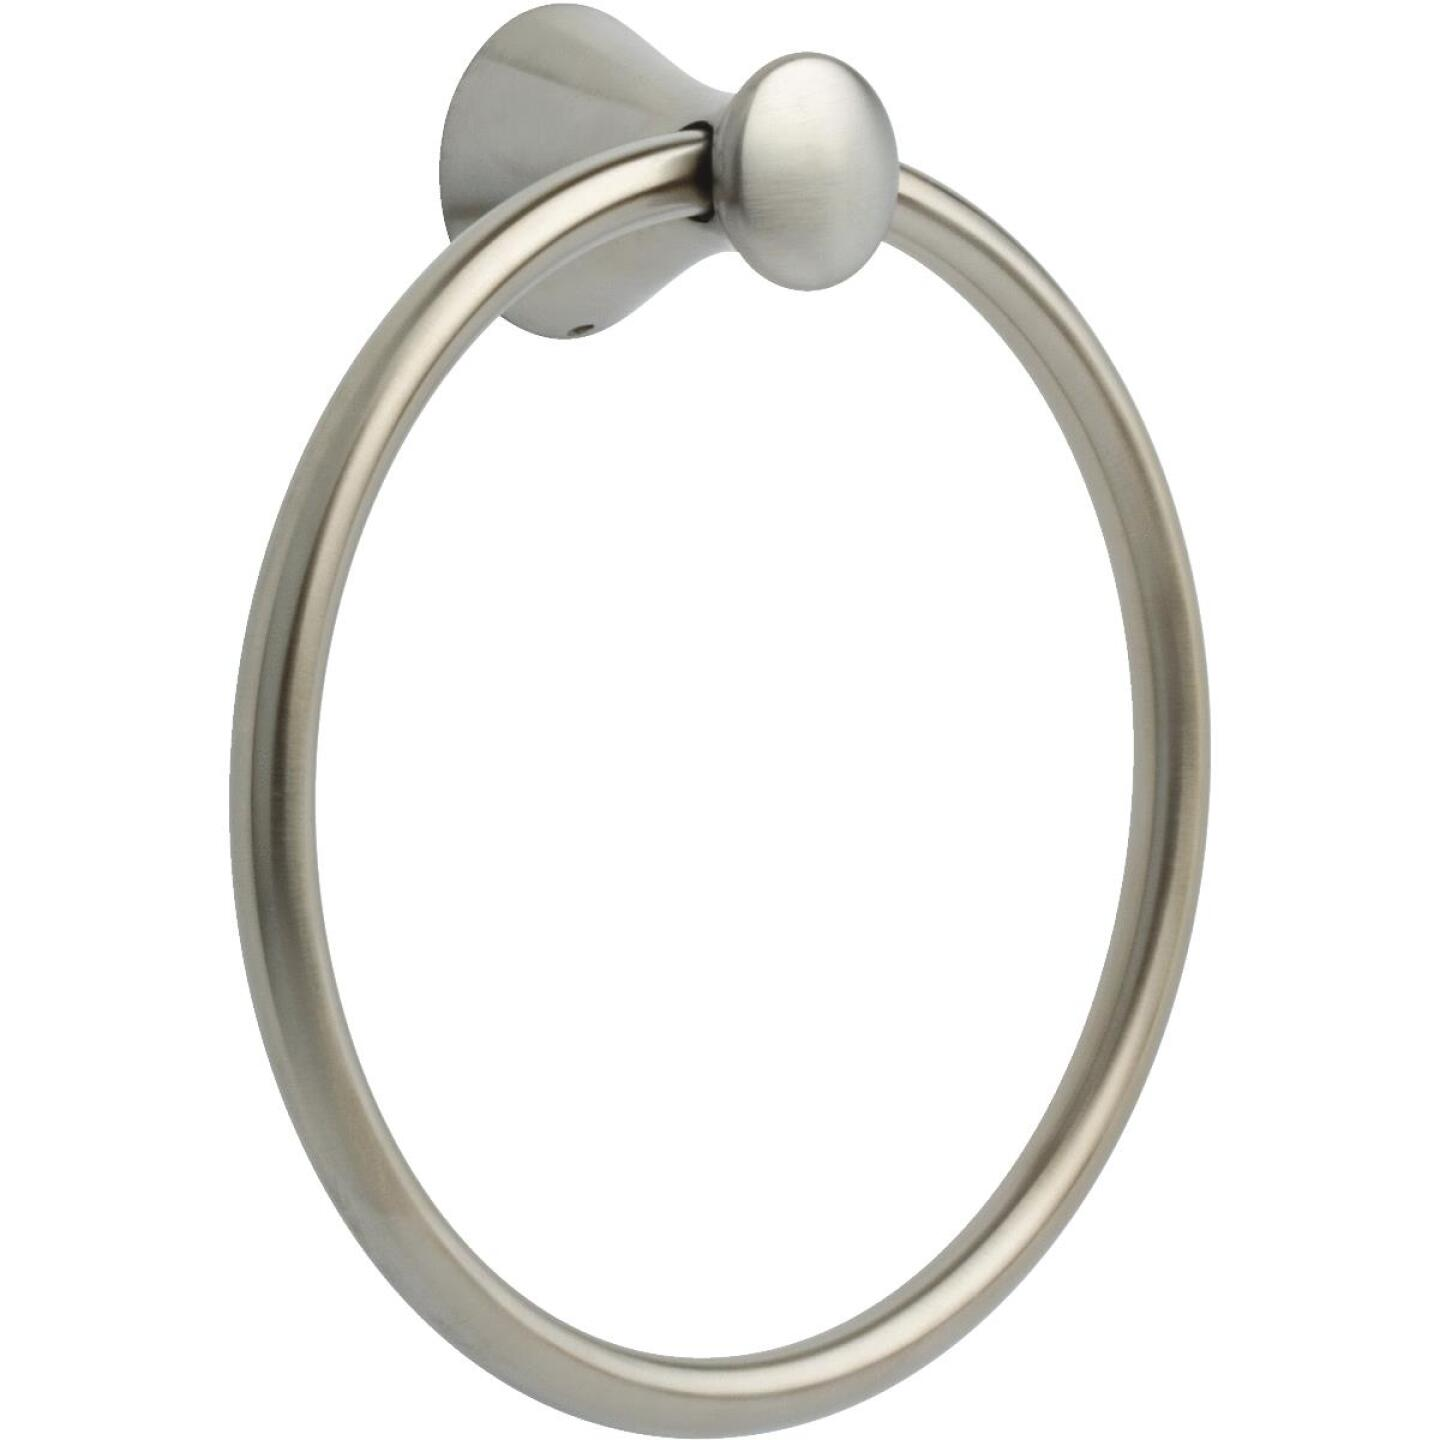 Delta Stainless 7.4 In. Towel Ring Image 1